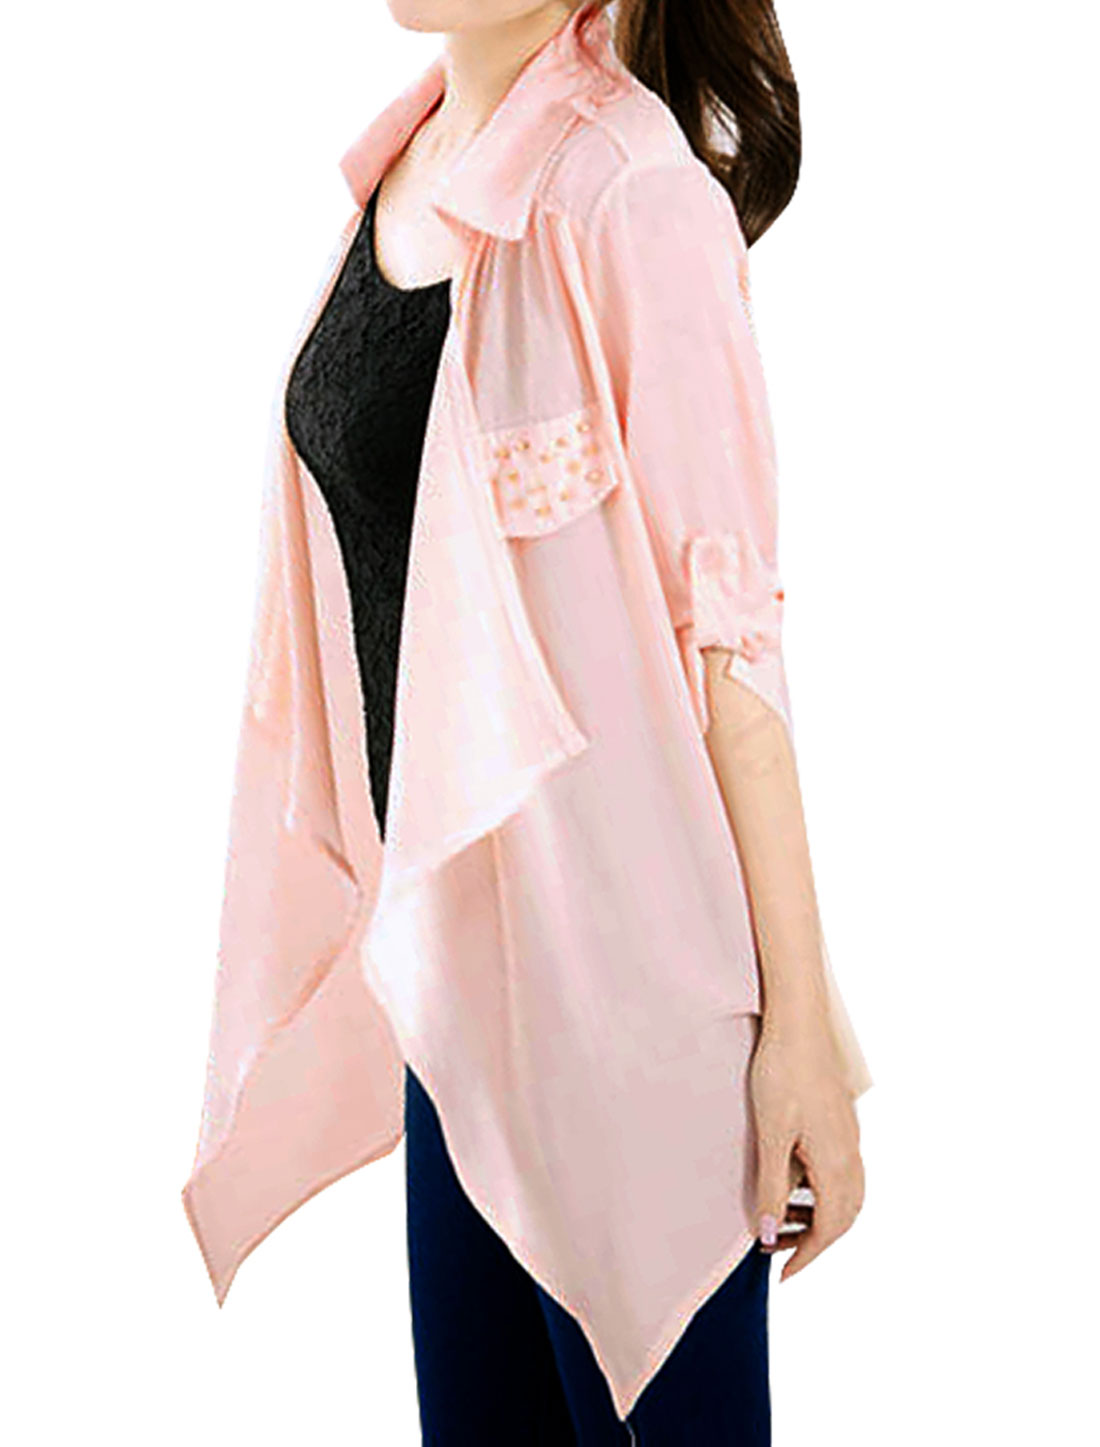 Ladies Rolled Up Elbow Sleeve Beadedd Decor Light Pink Draped Blouse XS